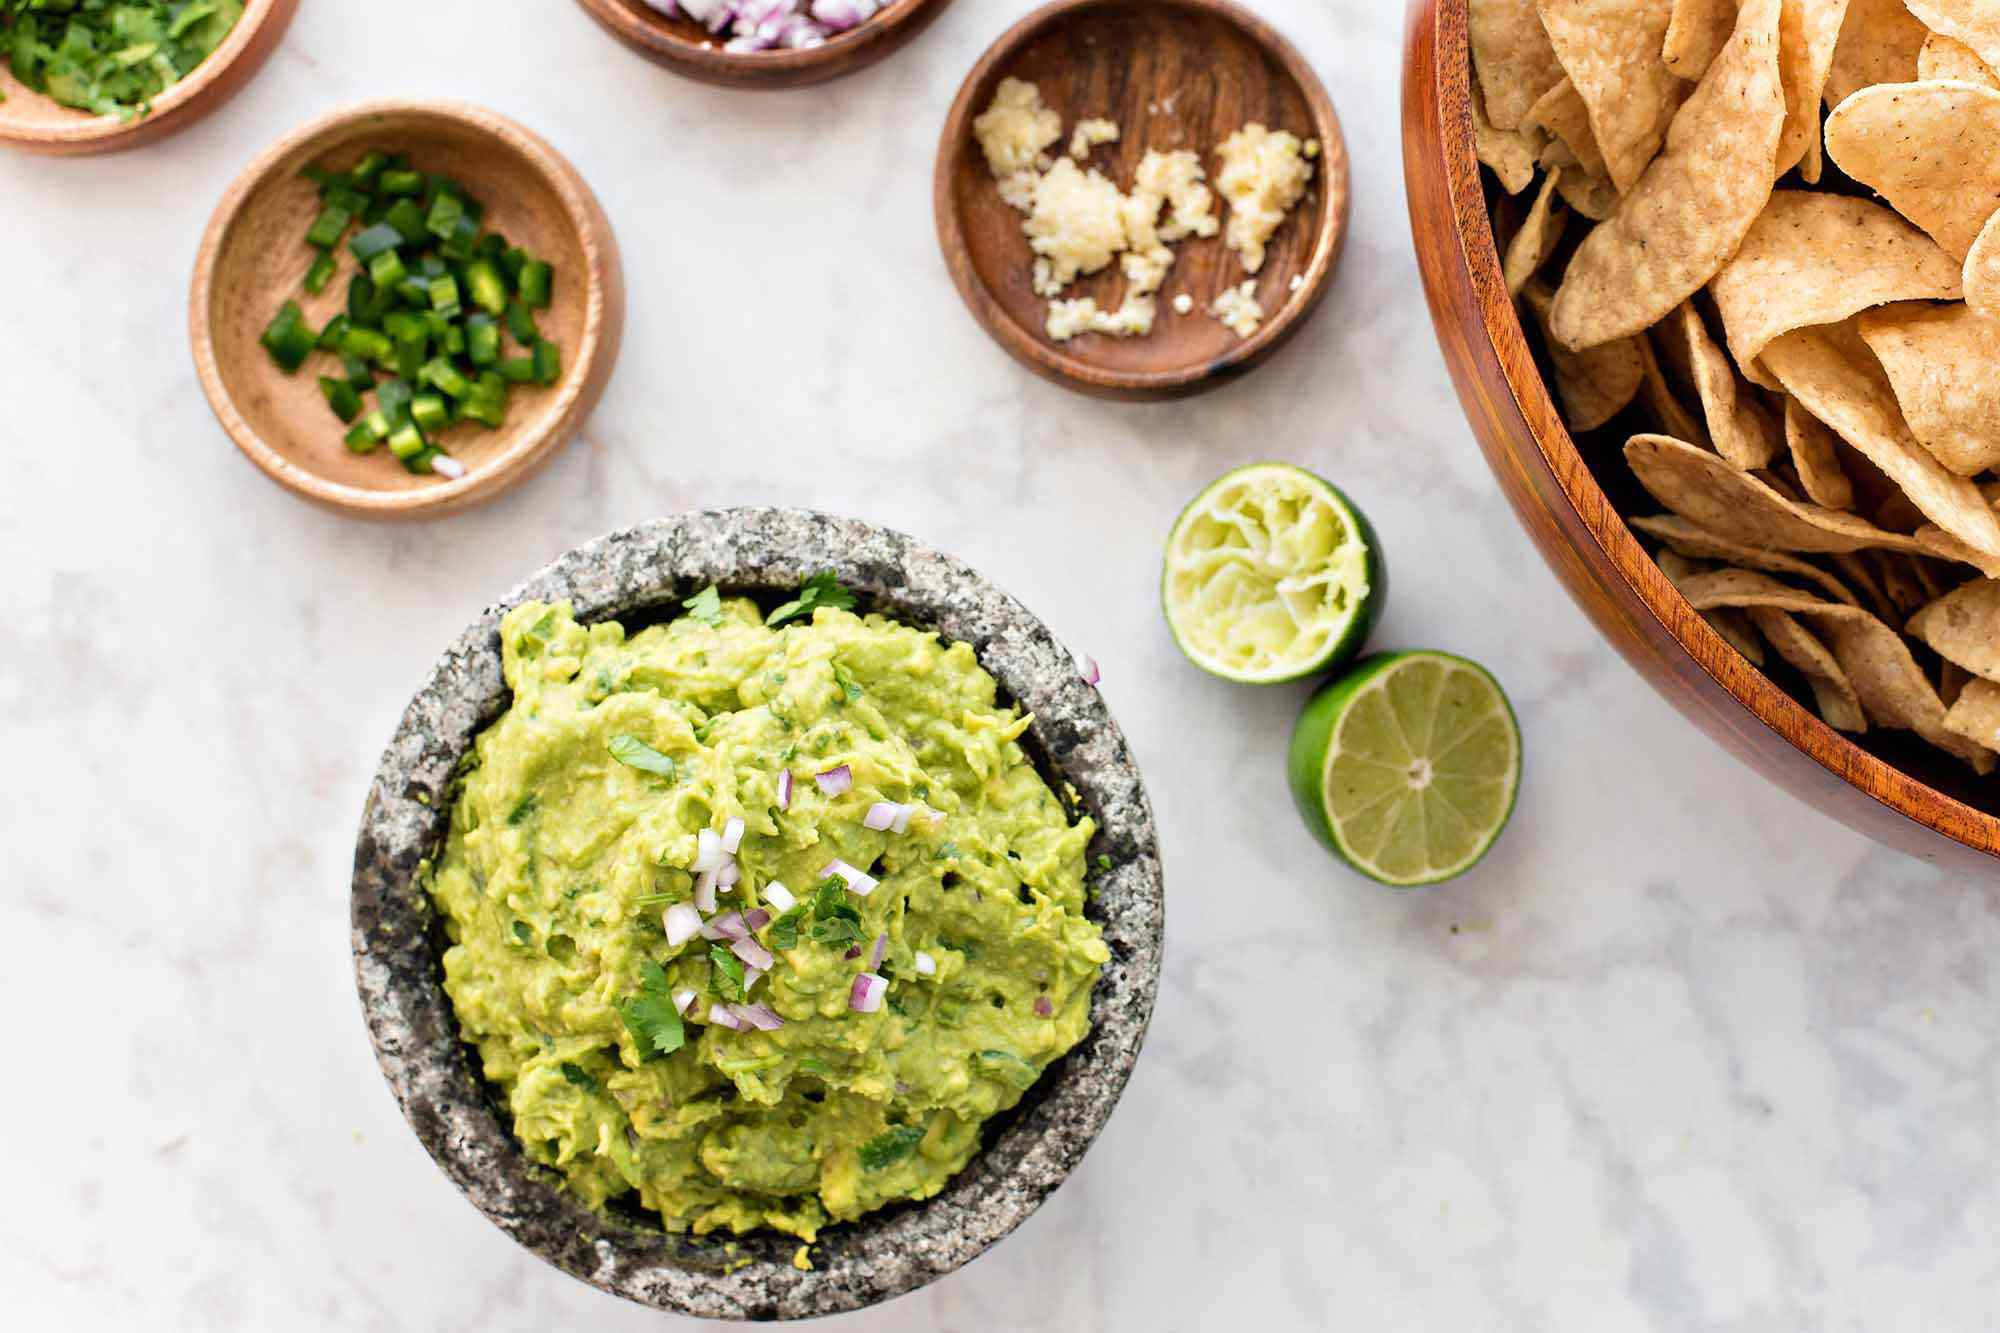 Guacamole with lime and cilantro - bowl of guacamole with smaller bowls of onion, cilantro, garlic and lime nearby and a big bowl of chips